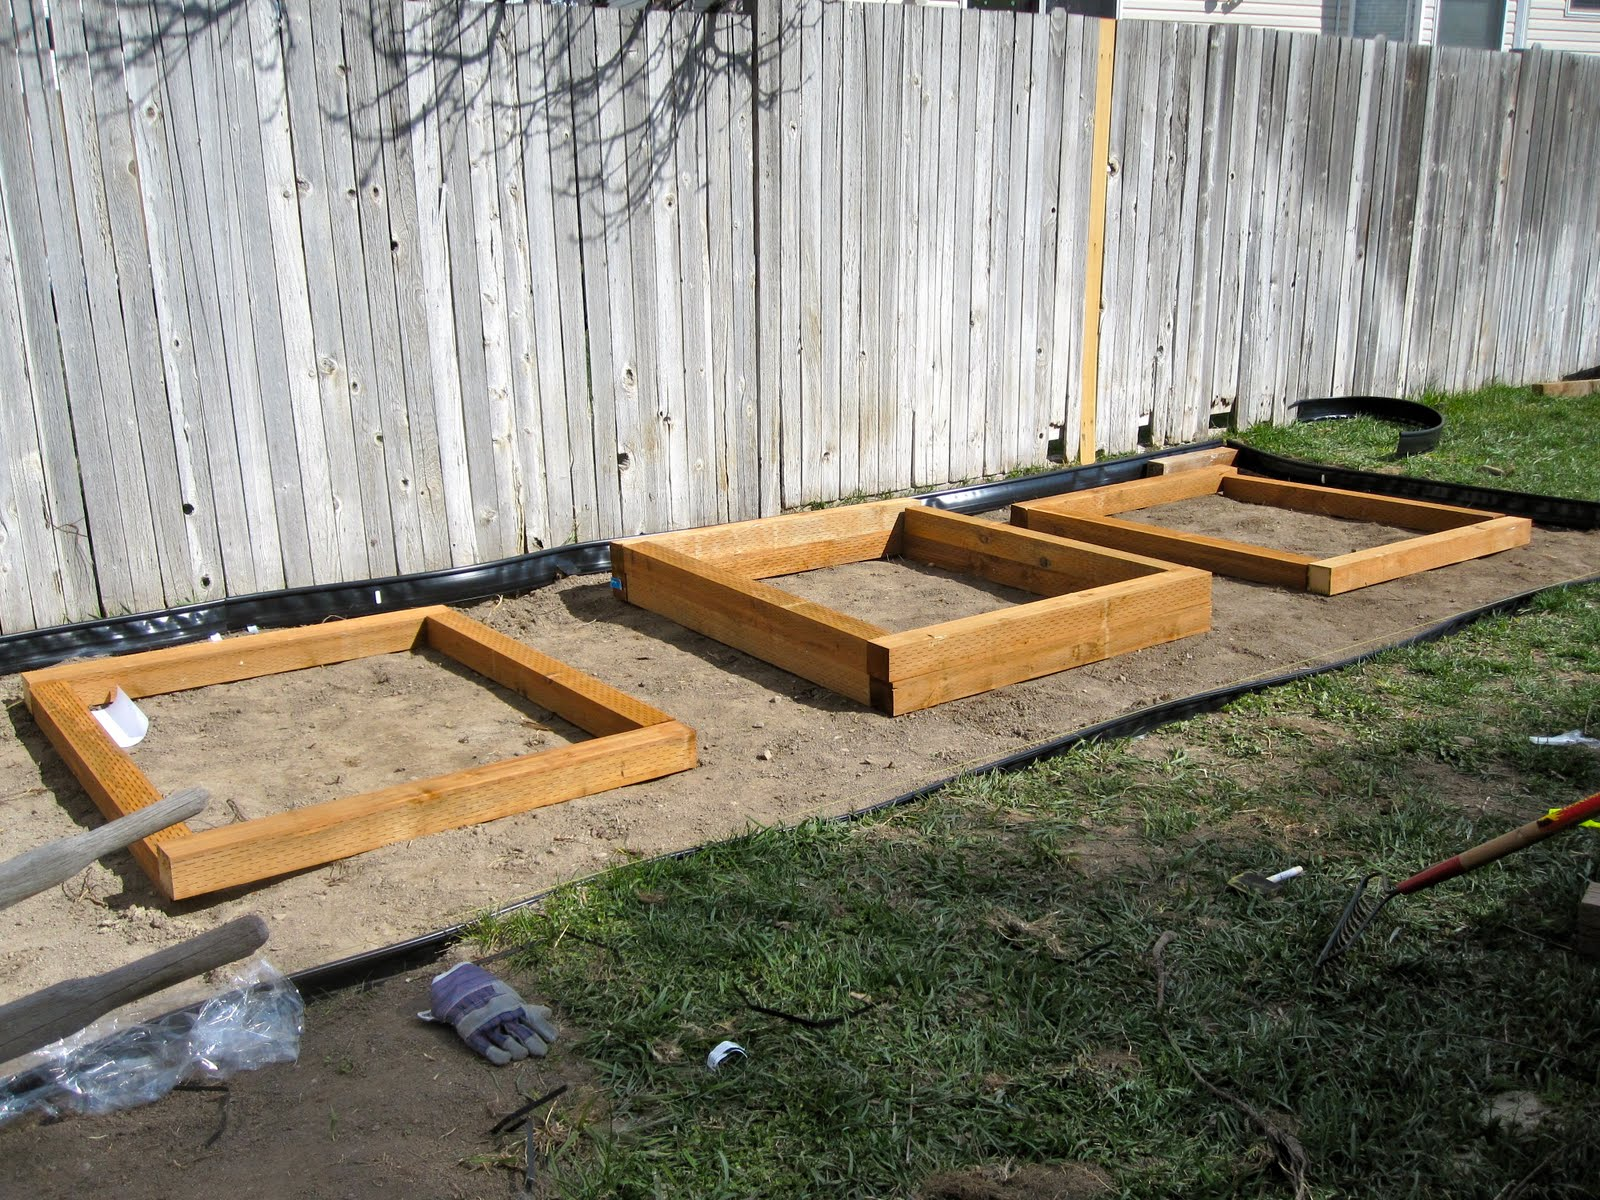 Backyard Garden Box Design furniture creative diy vertical fence mounted garden planter boxes using cedar wood for backyard garden house ideas wood garden box Garden Design With Bird And Berry Backyard Progress Looking Like A Garden With Plant